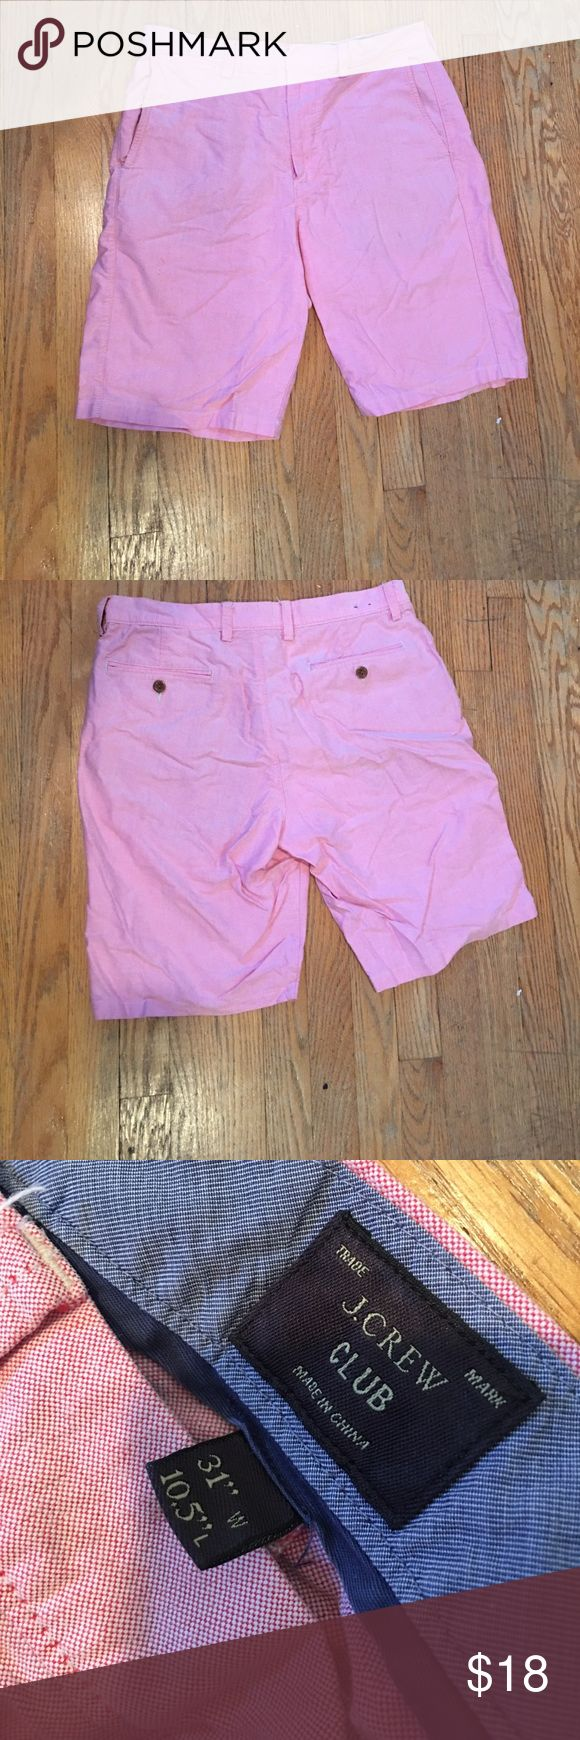 J Crew Club Shorts These are a pair of J Crew Club shorts. They are in perfect condition and are a 31 W and have an inseem of 10.5 inches. Great for summer! Comment with Questions! J. Crew Shorts Flat Front